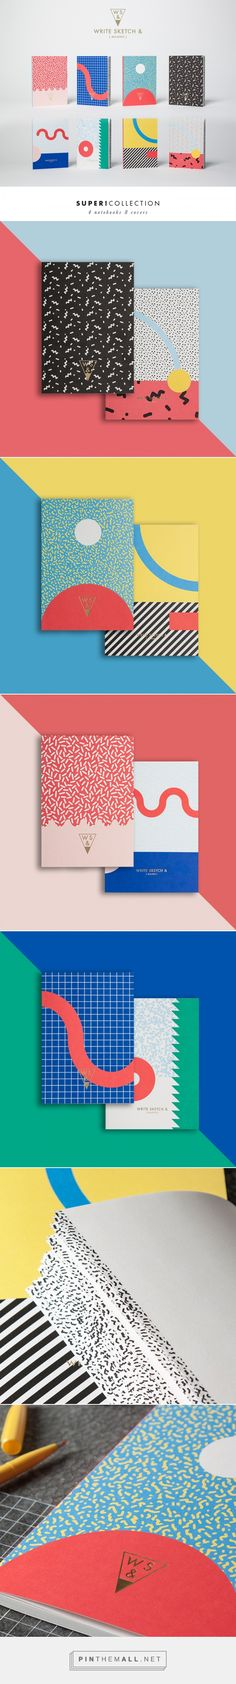 Write Sketch & Super Collection - Notebooks Designed by Officemilano. Geometric patterns and minimalism. Web Design, Layout Design, Logo Design, Branding And Packaging, Packaging Design, Design Graphique, Art Graphique, Design Poster, Print Design